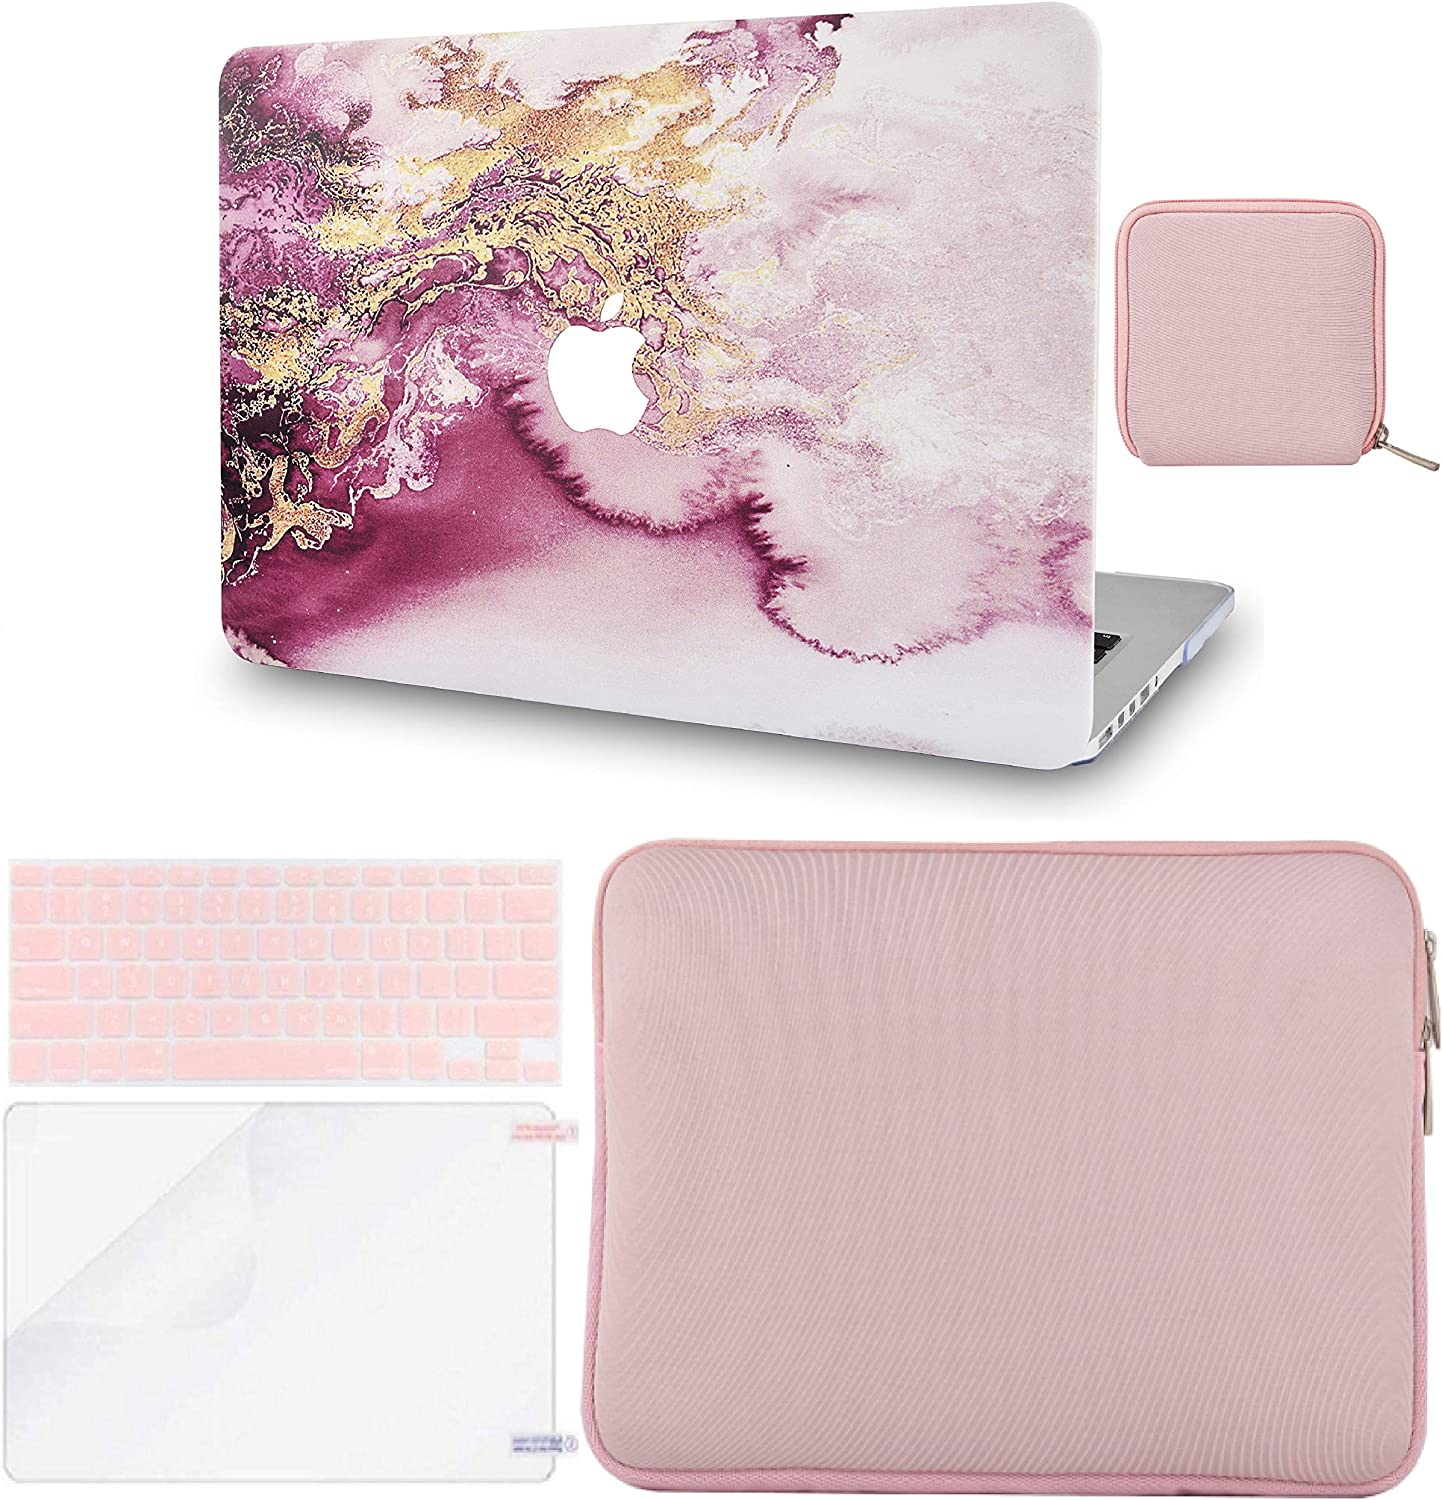 """LuvCase 5in1 LaptopCase forOld MacBook Pro 13"""" Retina Display (2012-2015) A1502/A1425 HardShell Cover, Slim Sleeve, Pouch, Keyboard Cover & Screen Protector (Red Gold Marble)"""